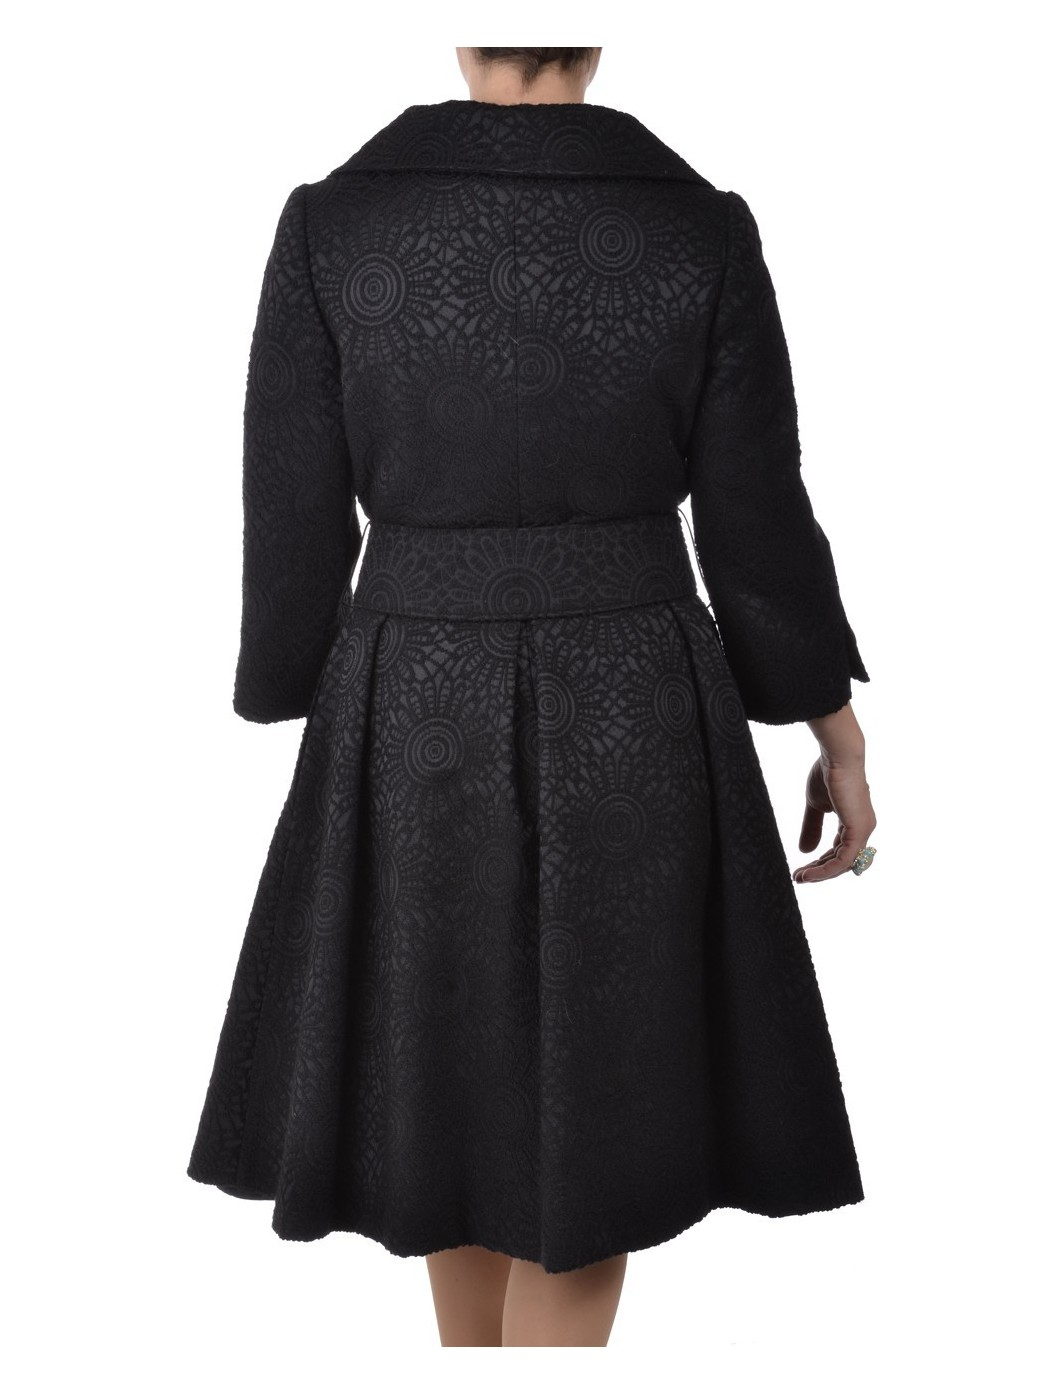 Black brocade coat by Marina Ricci